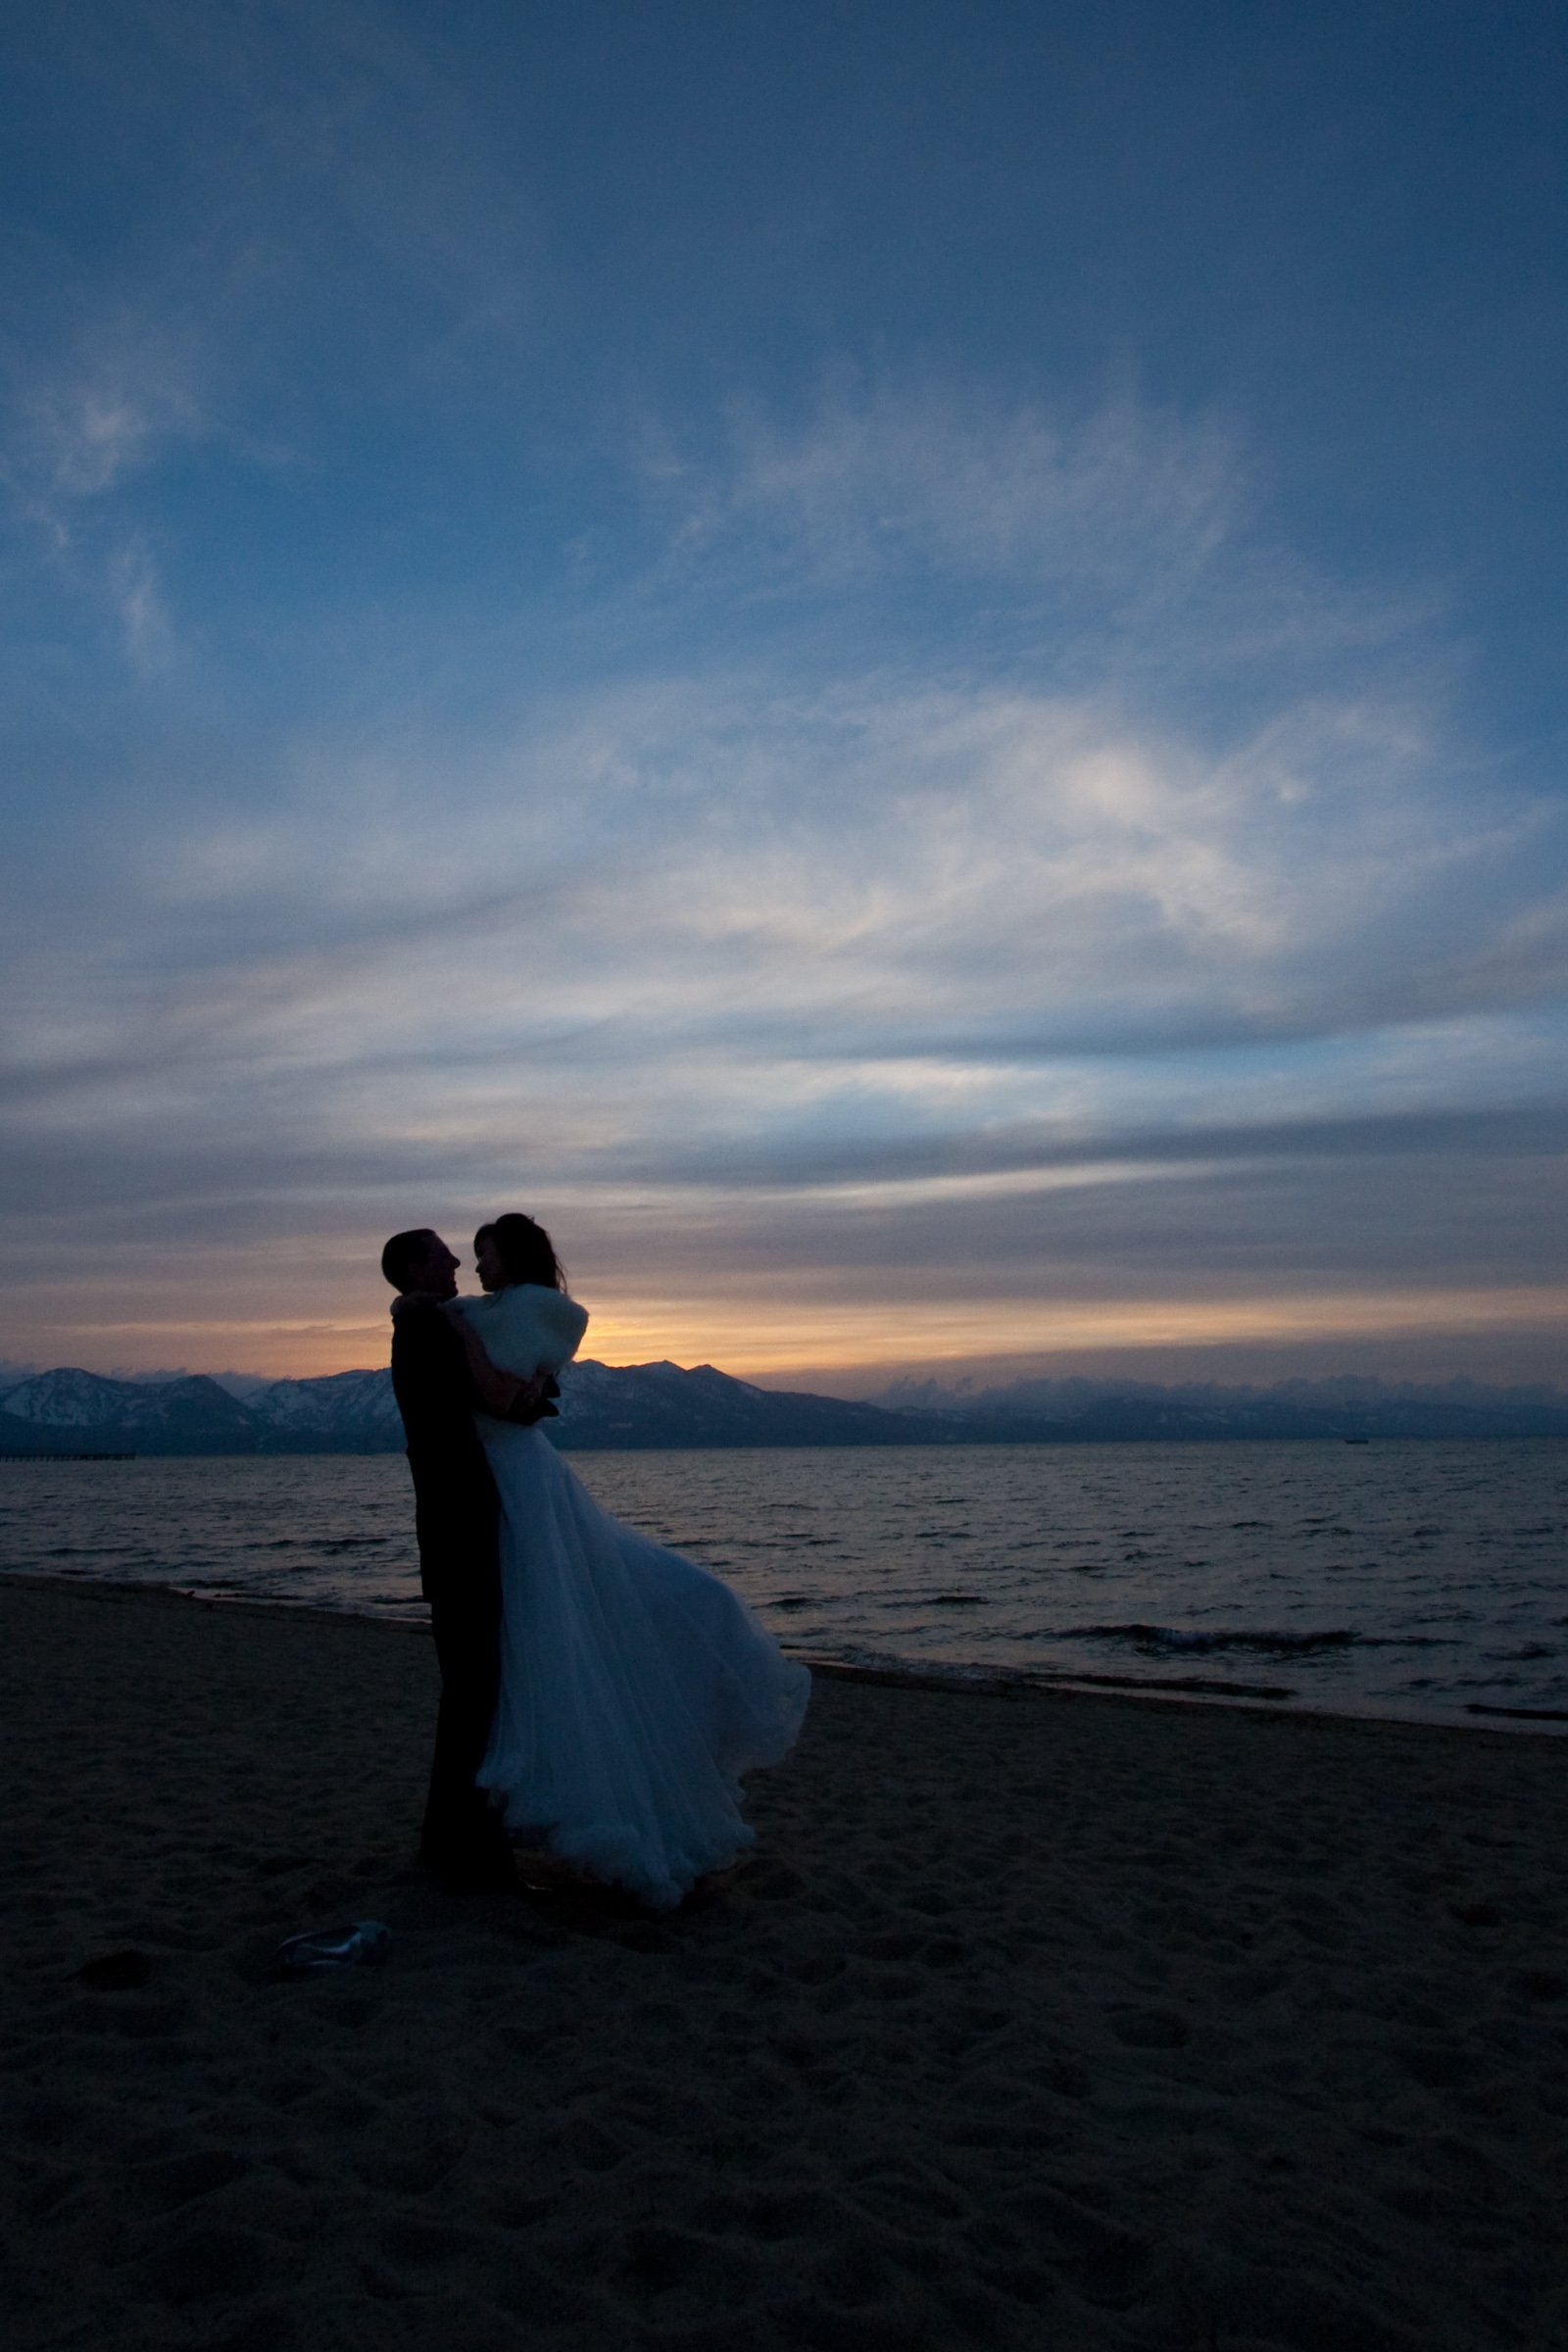 Celeste and Jeff wedding portrait showing their silhouette against evening sky